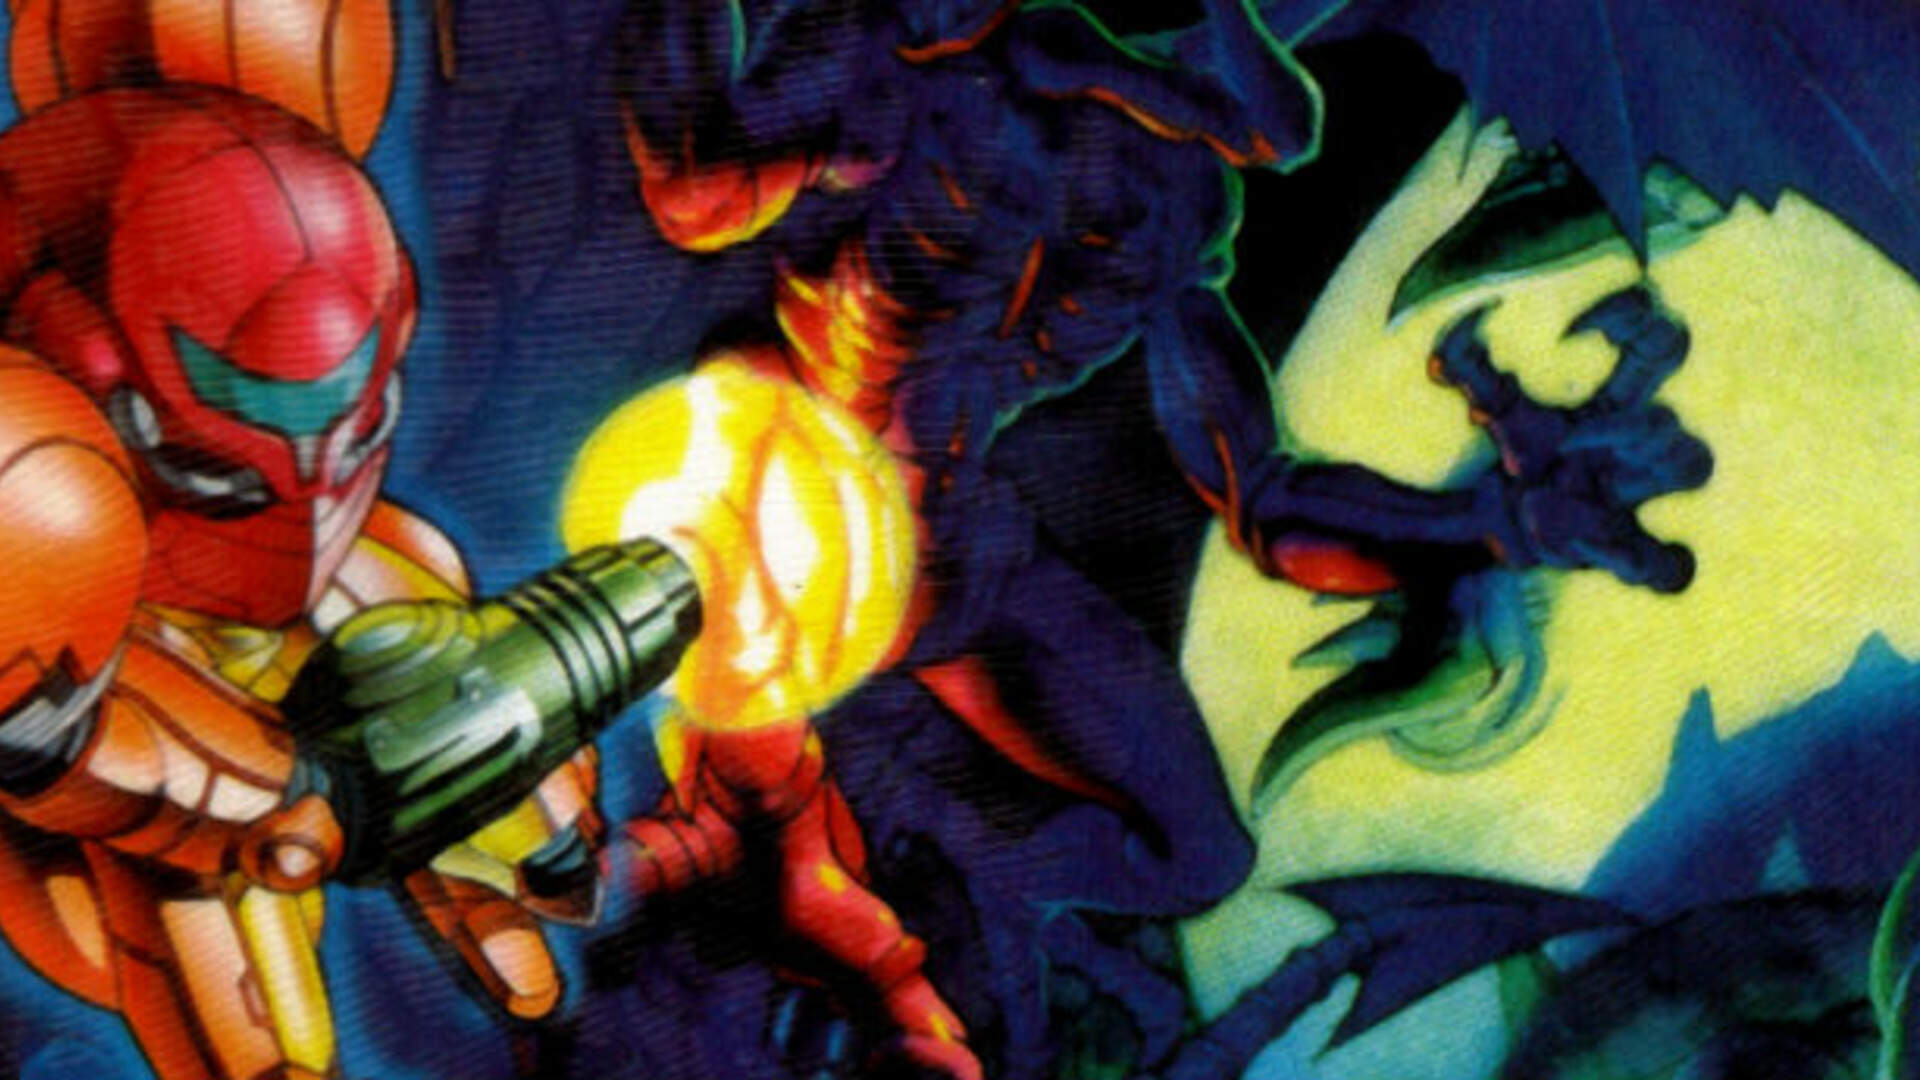 A Rundown of The Clever Choices That Make Super Metroid's Level Design Some of the Best Ever